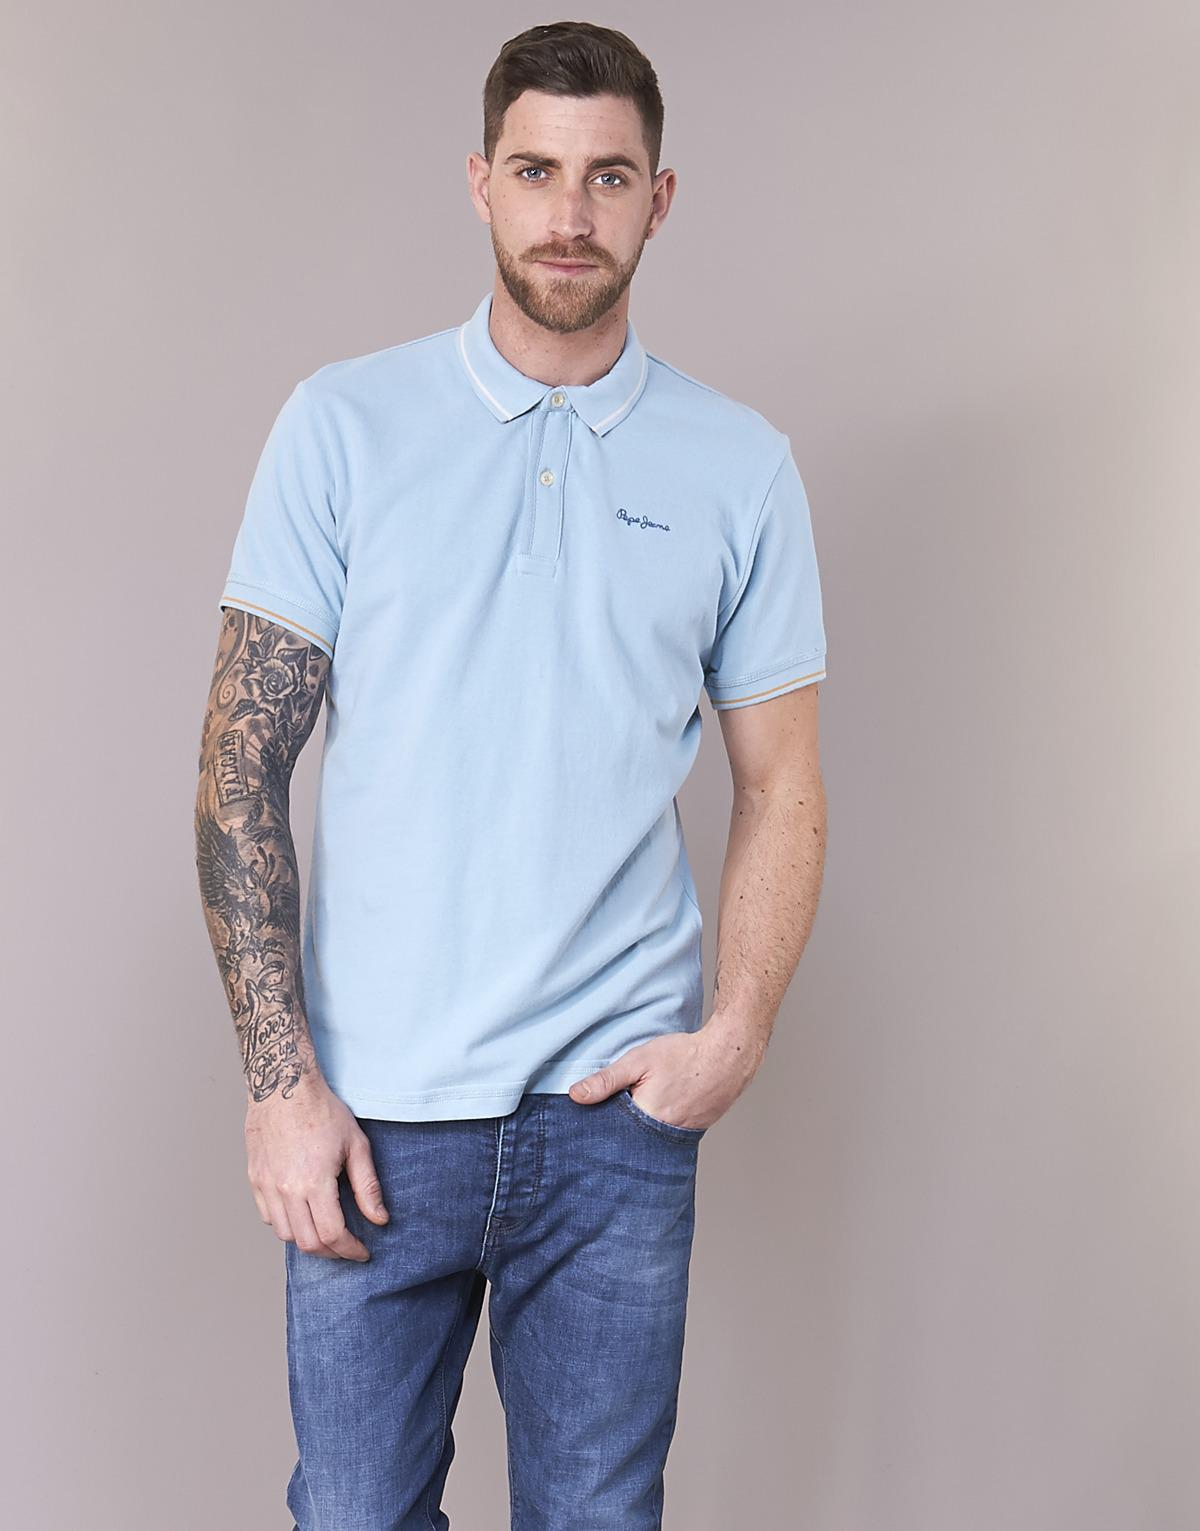 397e6cc0 Pepe Jeans Angelico Polo Shirt in Blue for Men - Lyst